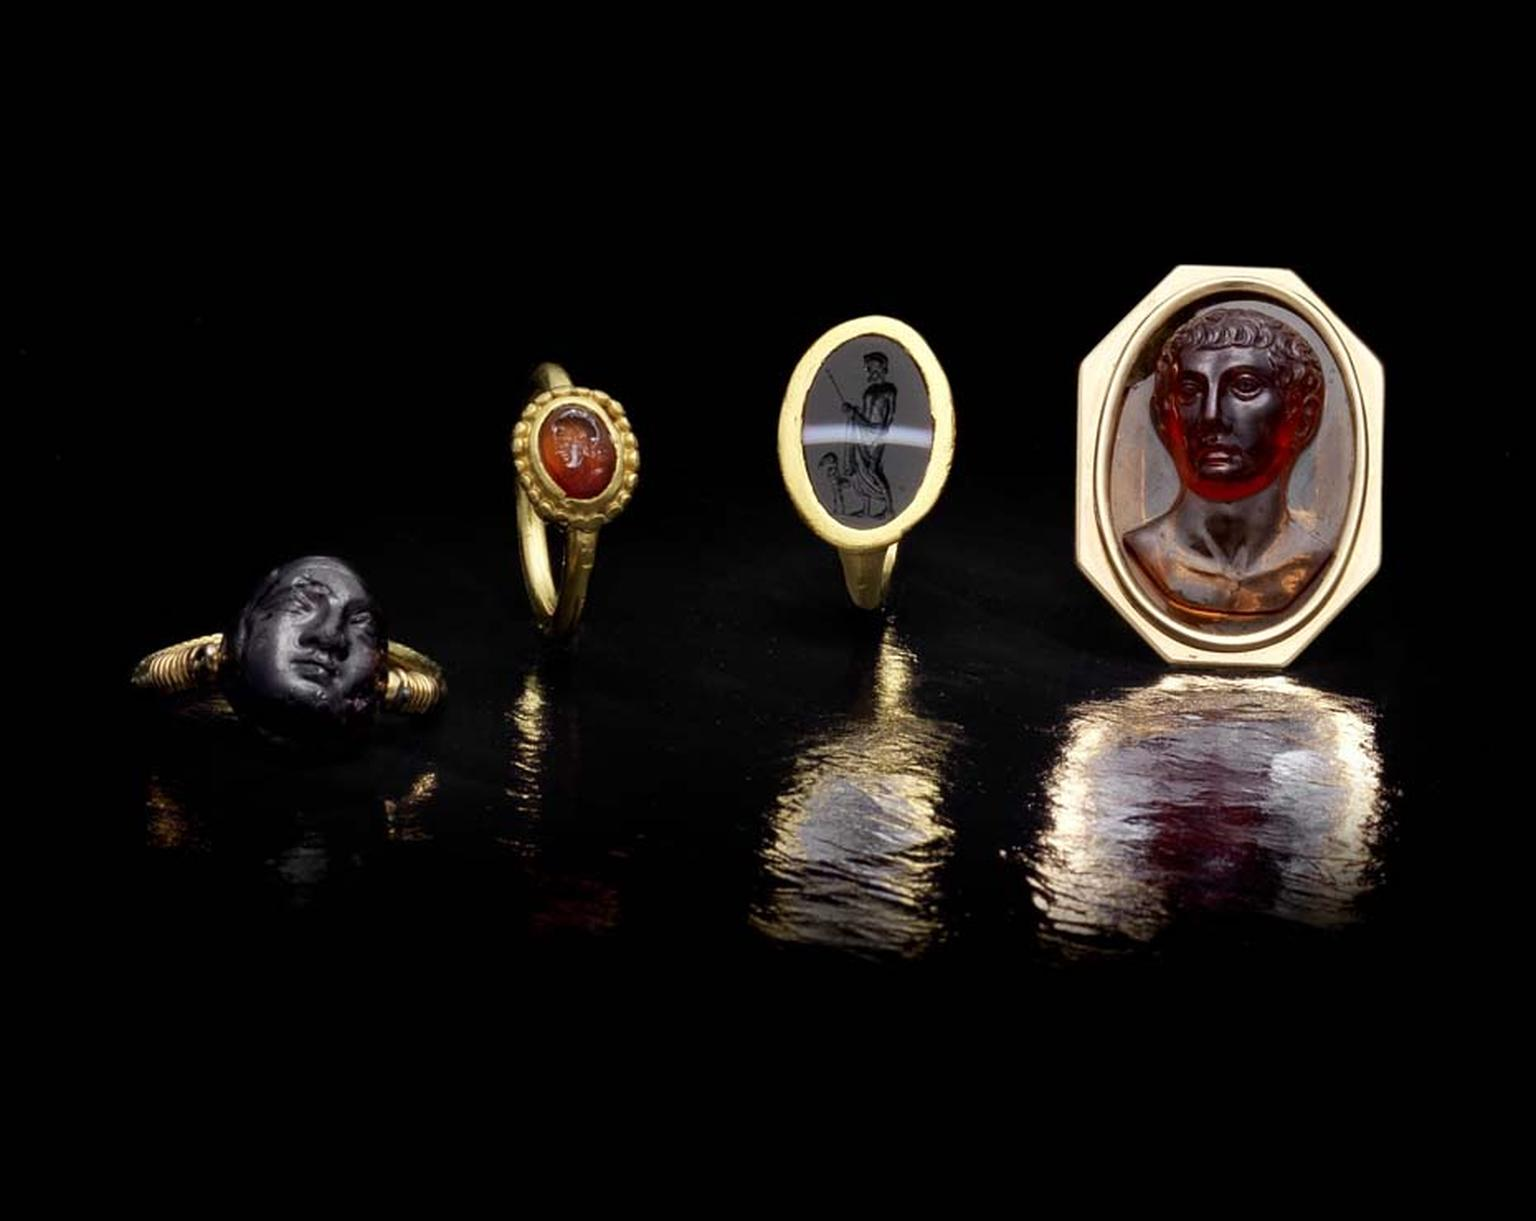 A selection of intaglio rings from the Ceres Collection. The most ancient ring of the collection dates from the 4th century BC and others range from the Renaissance period right through to the 19th century.